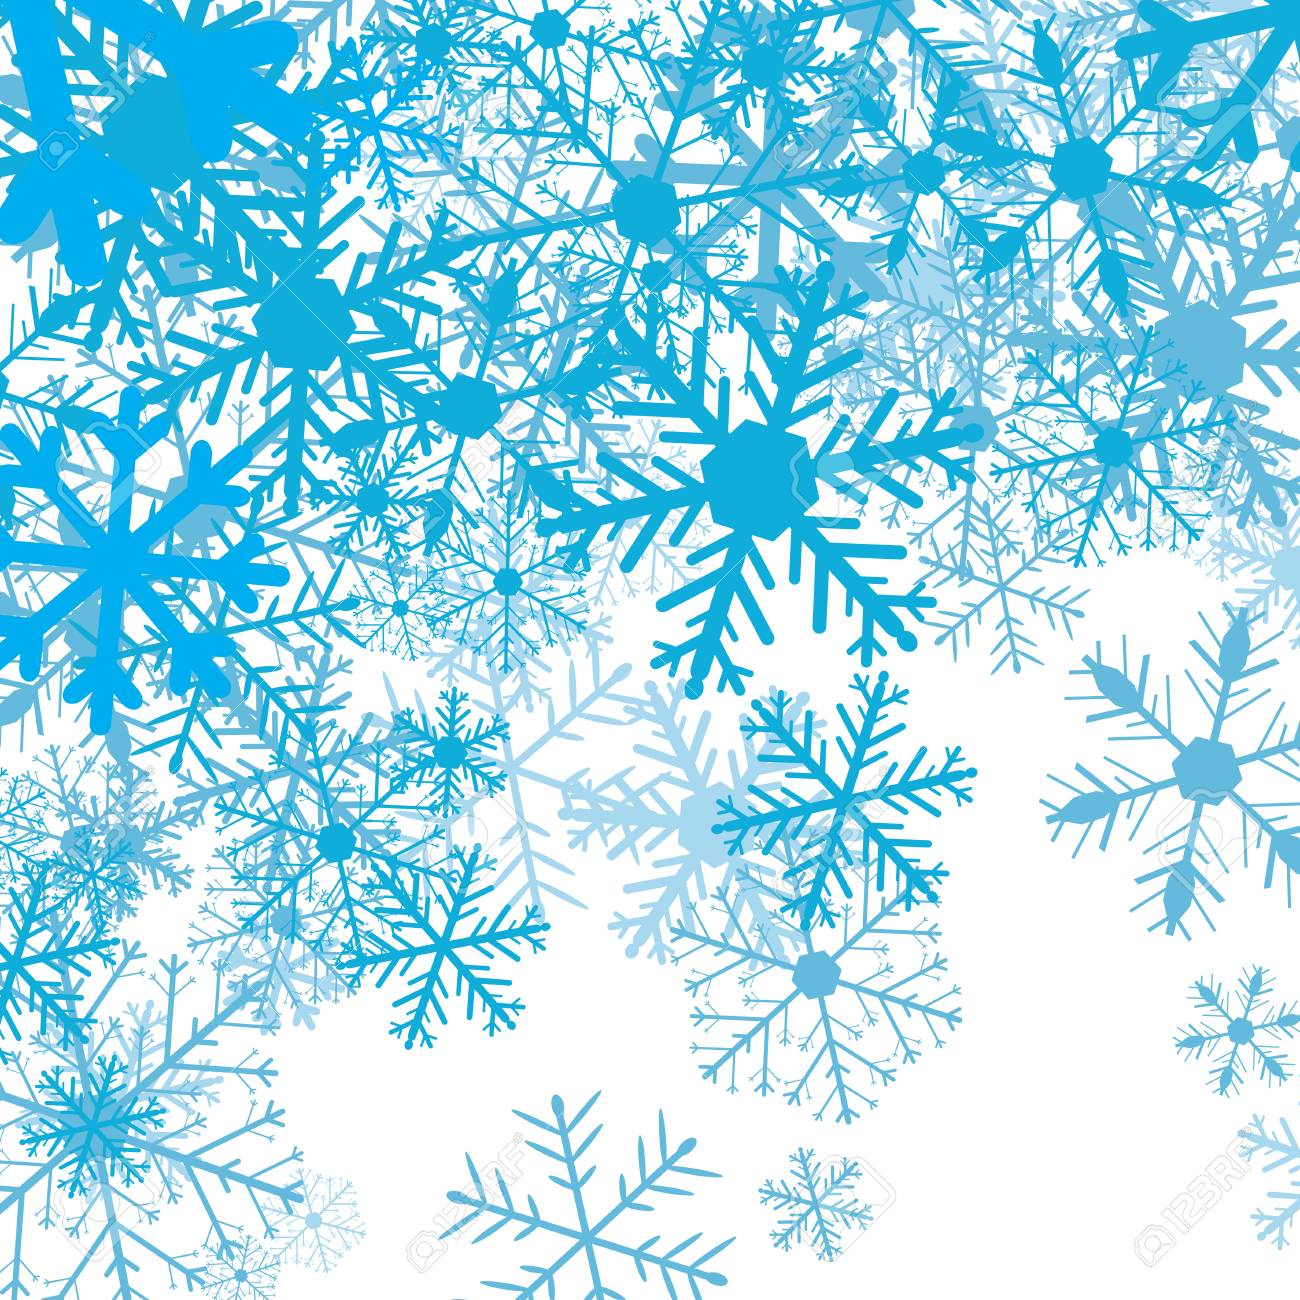 Winter background with snow flakes, vector illustration - 68098594